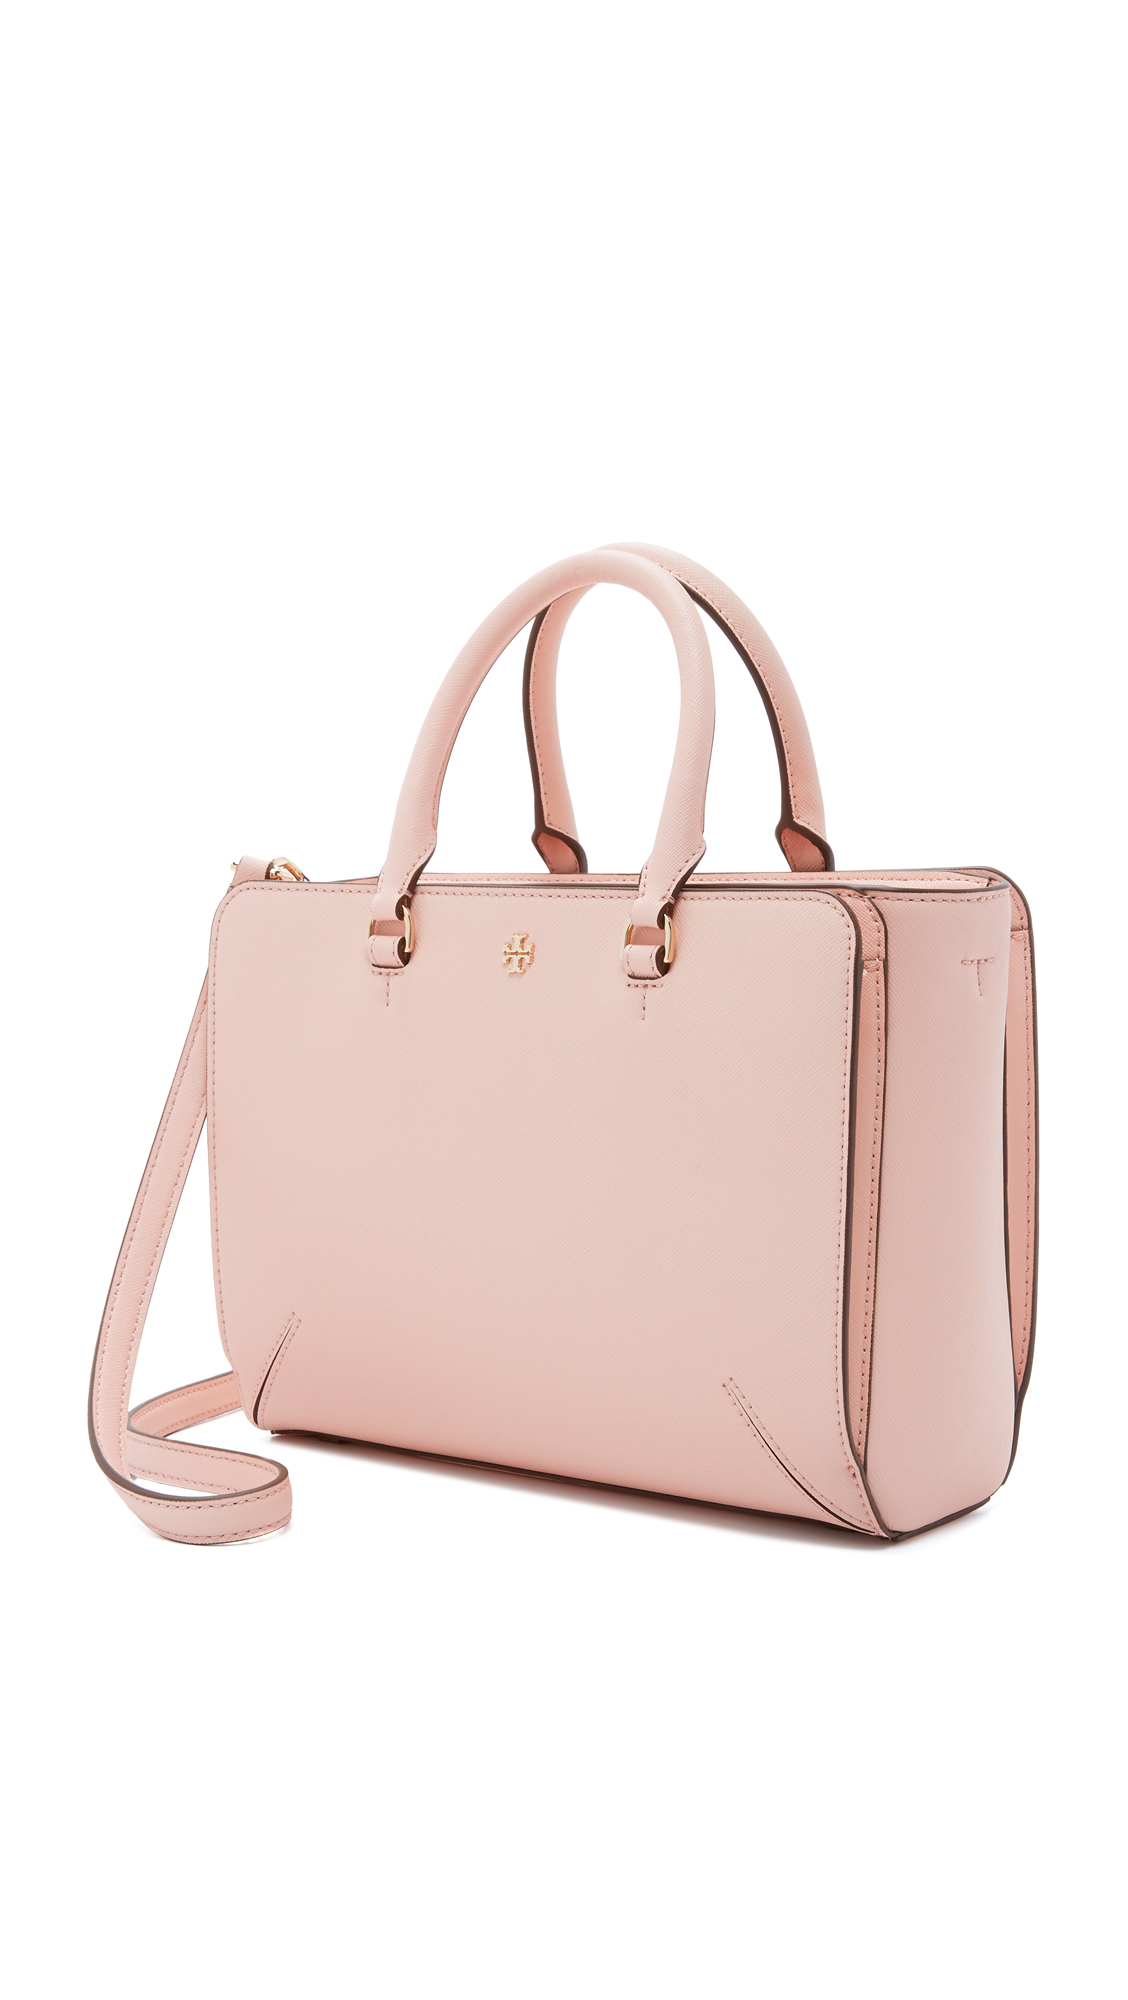 e36951eb7a52 Lyst - Tory Burch Robinson Small Zip Tote in Pink